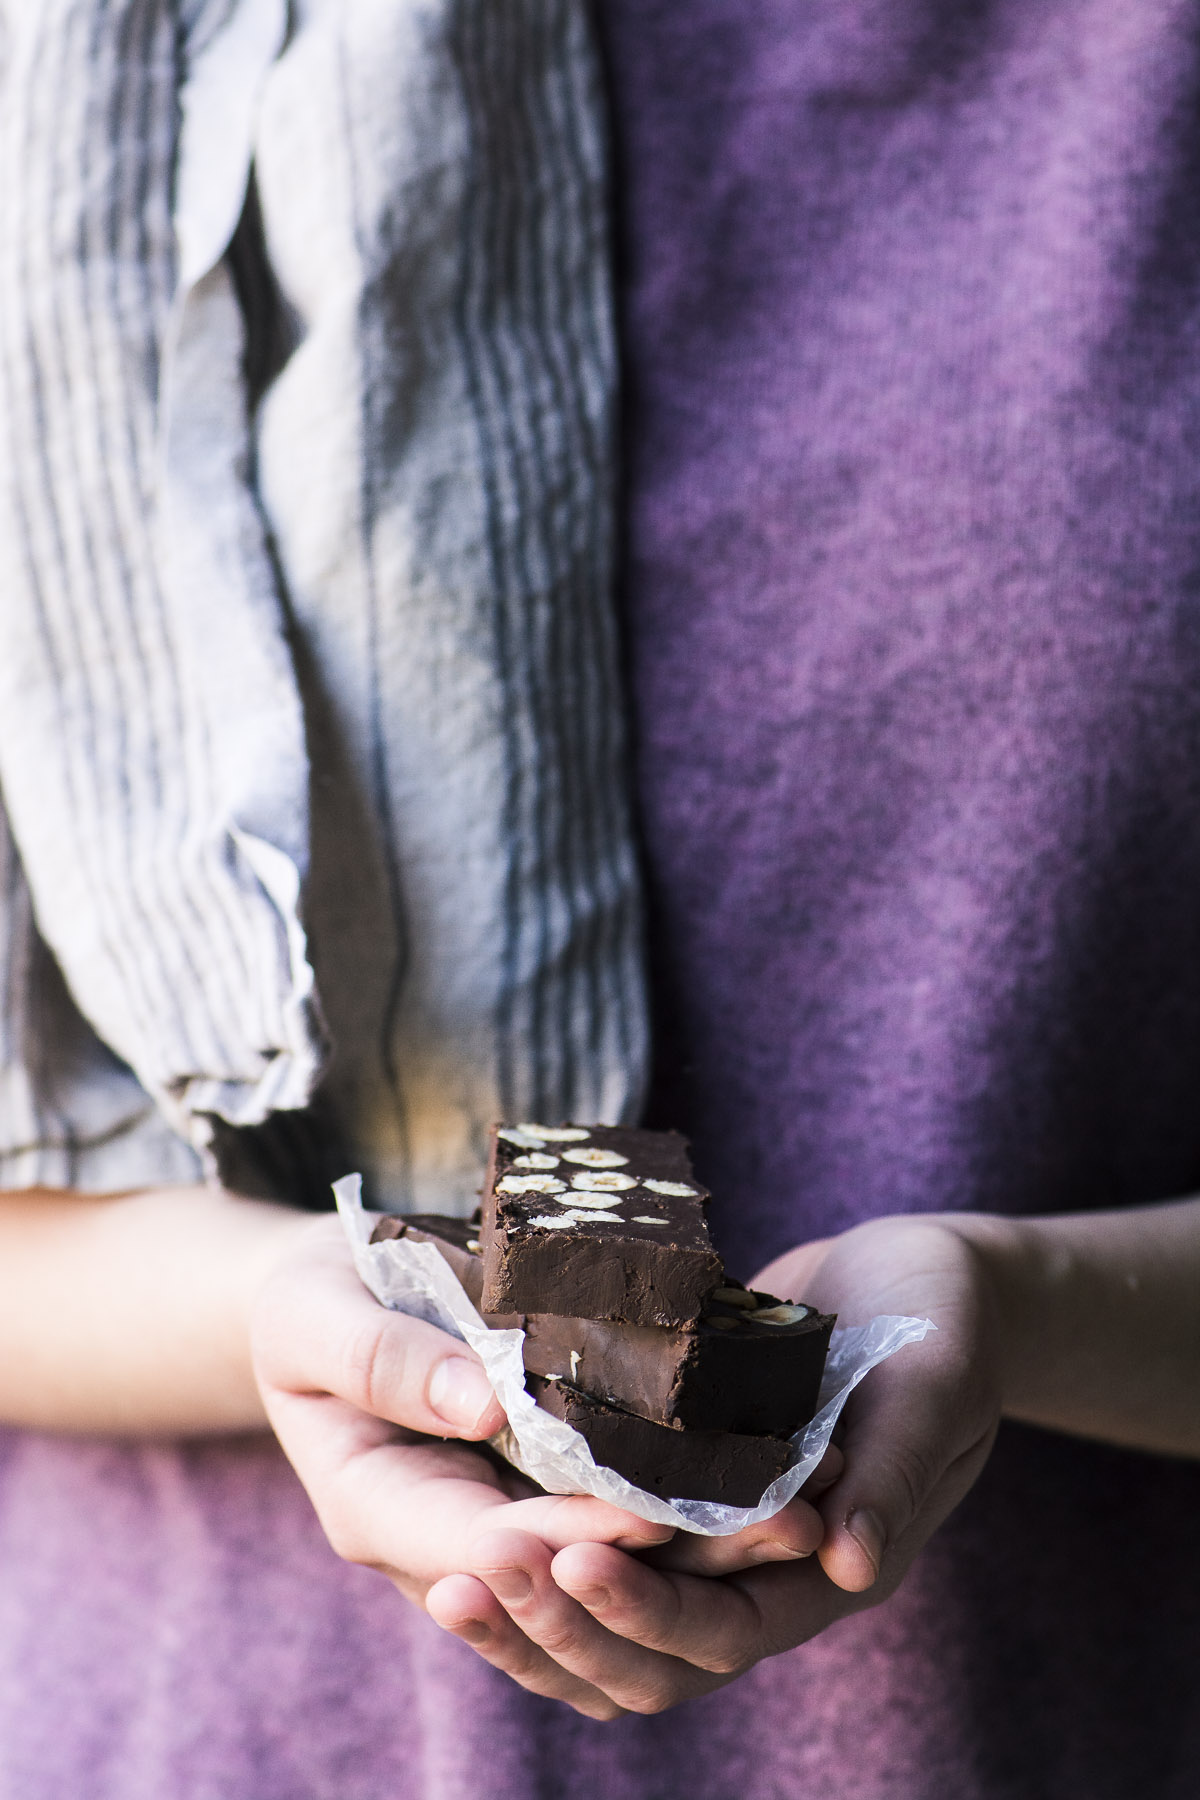 Holding a stack of chocolate hazelnut torrone slices